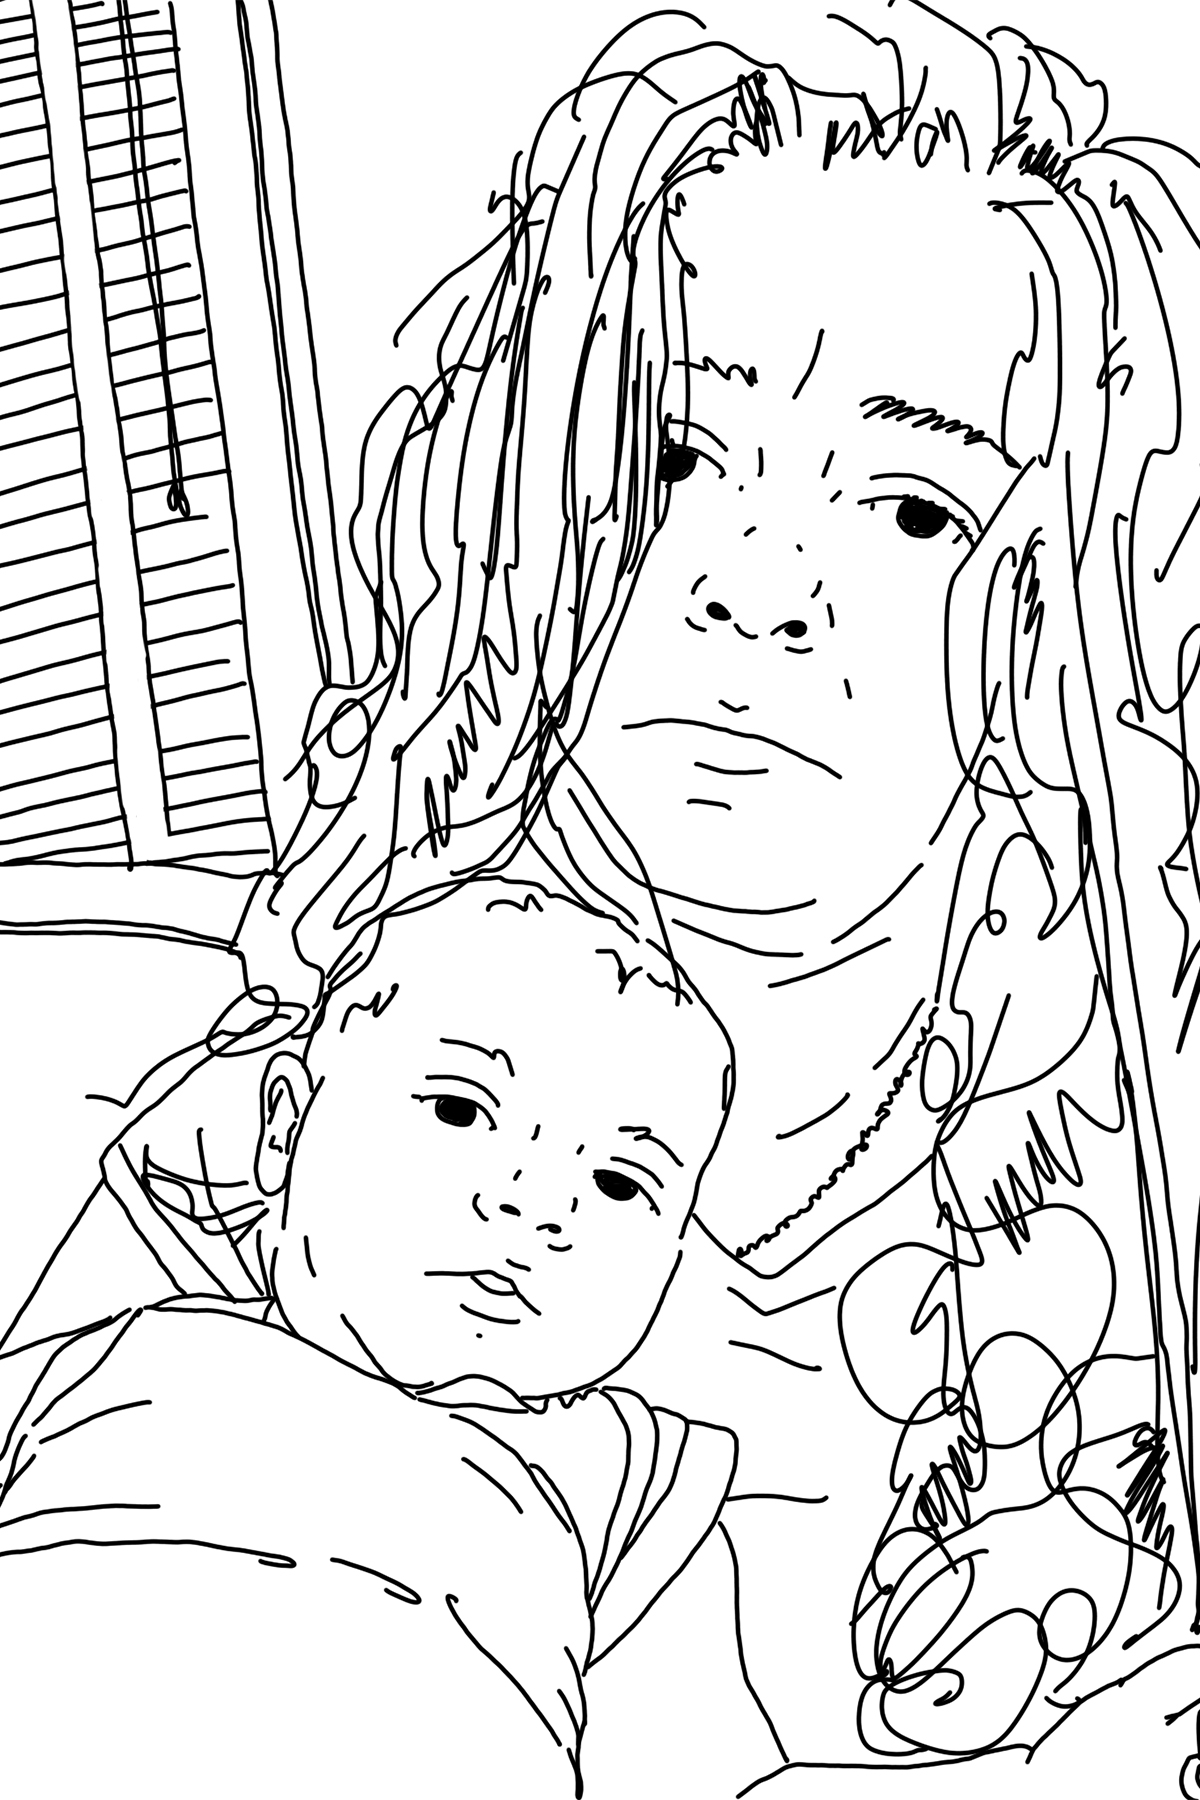 - Mara Sprafkin escaped Brooklyn, New York a few years ago and currently lives in Charlottesville, Virginia with her husband and two kids. She started drawing her son not long after he was born and before long other people were requesting drawings of their own kids, grandkids and pets.